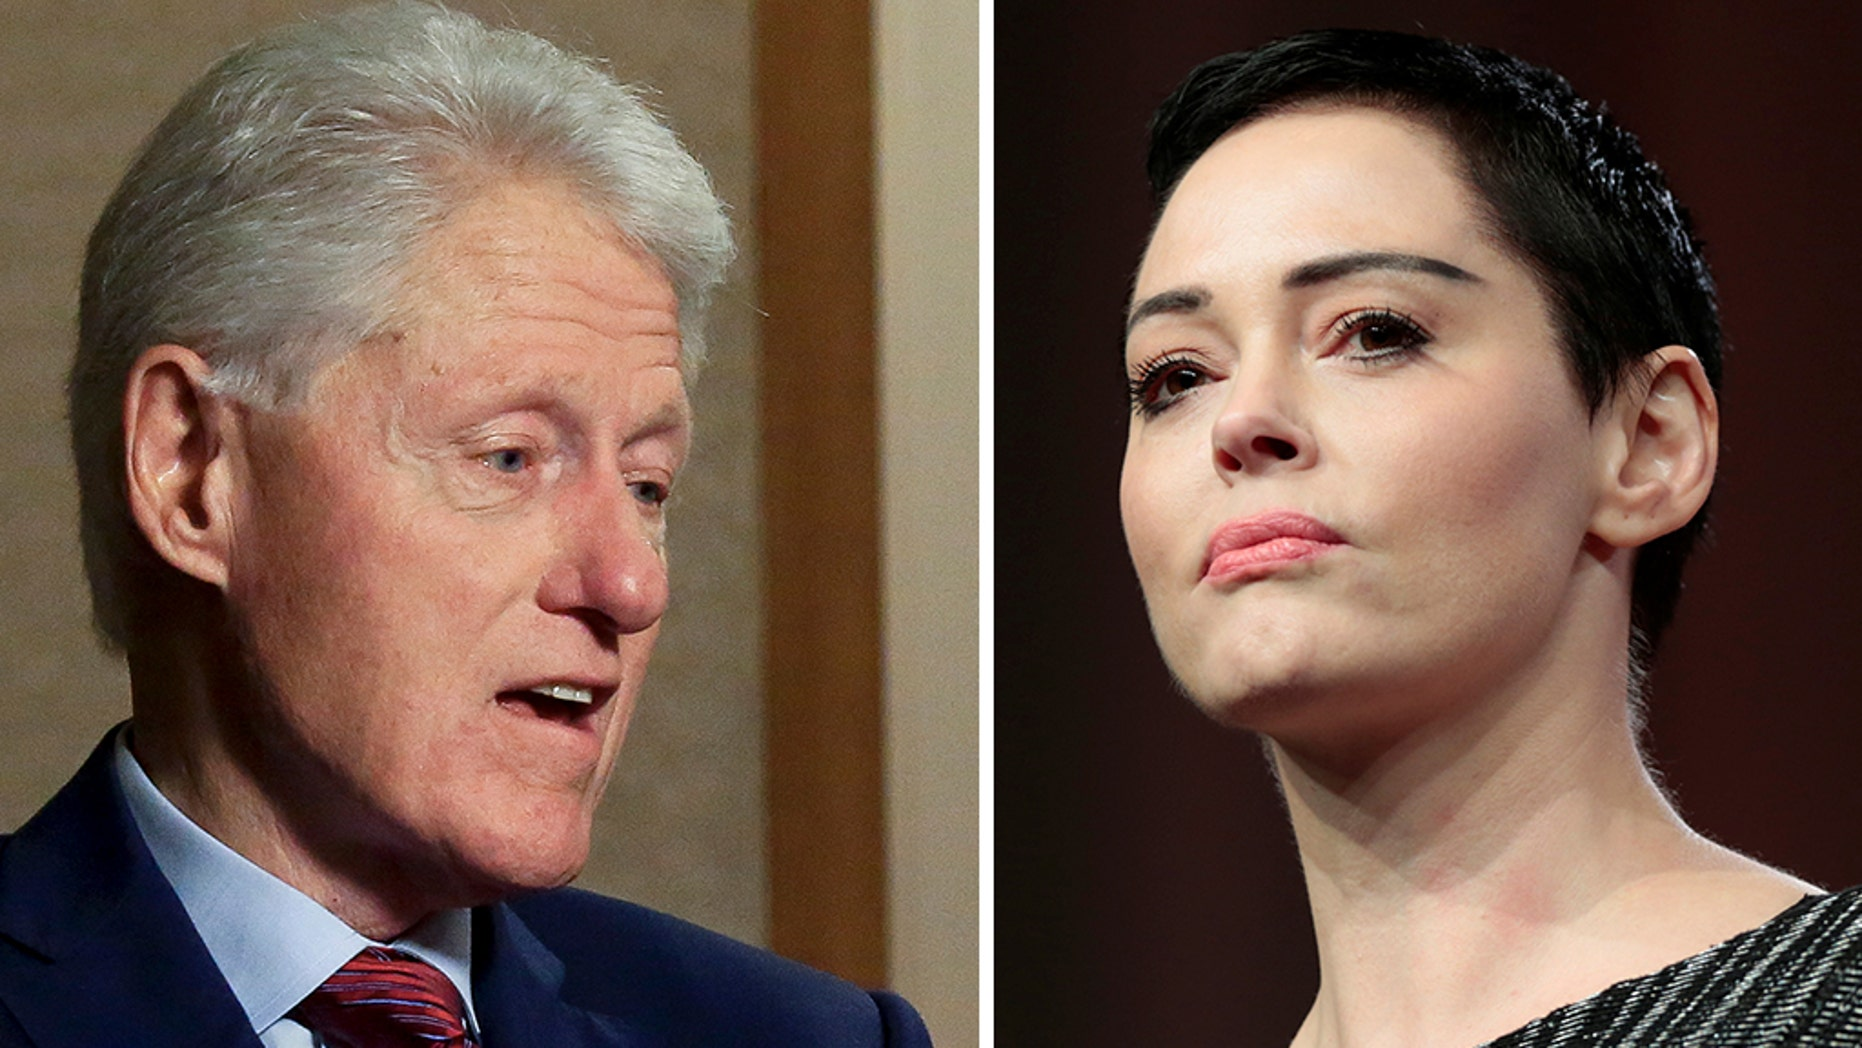 """Actress and #MeToo activist Rose McGowan slammed former President Bill Clinton on Monday, tweeting that he """"altered & destroyed"""" Monica Lewinsky's life."""